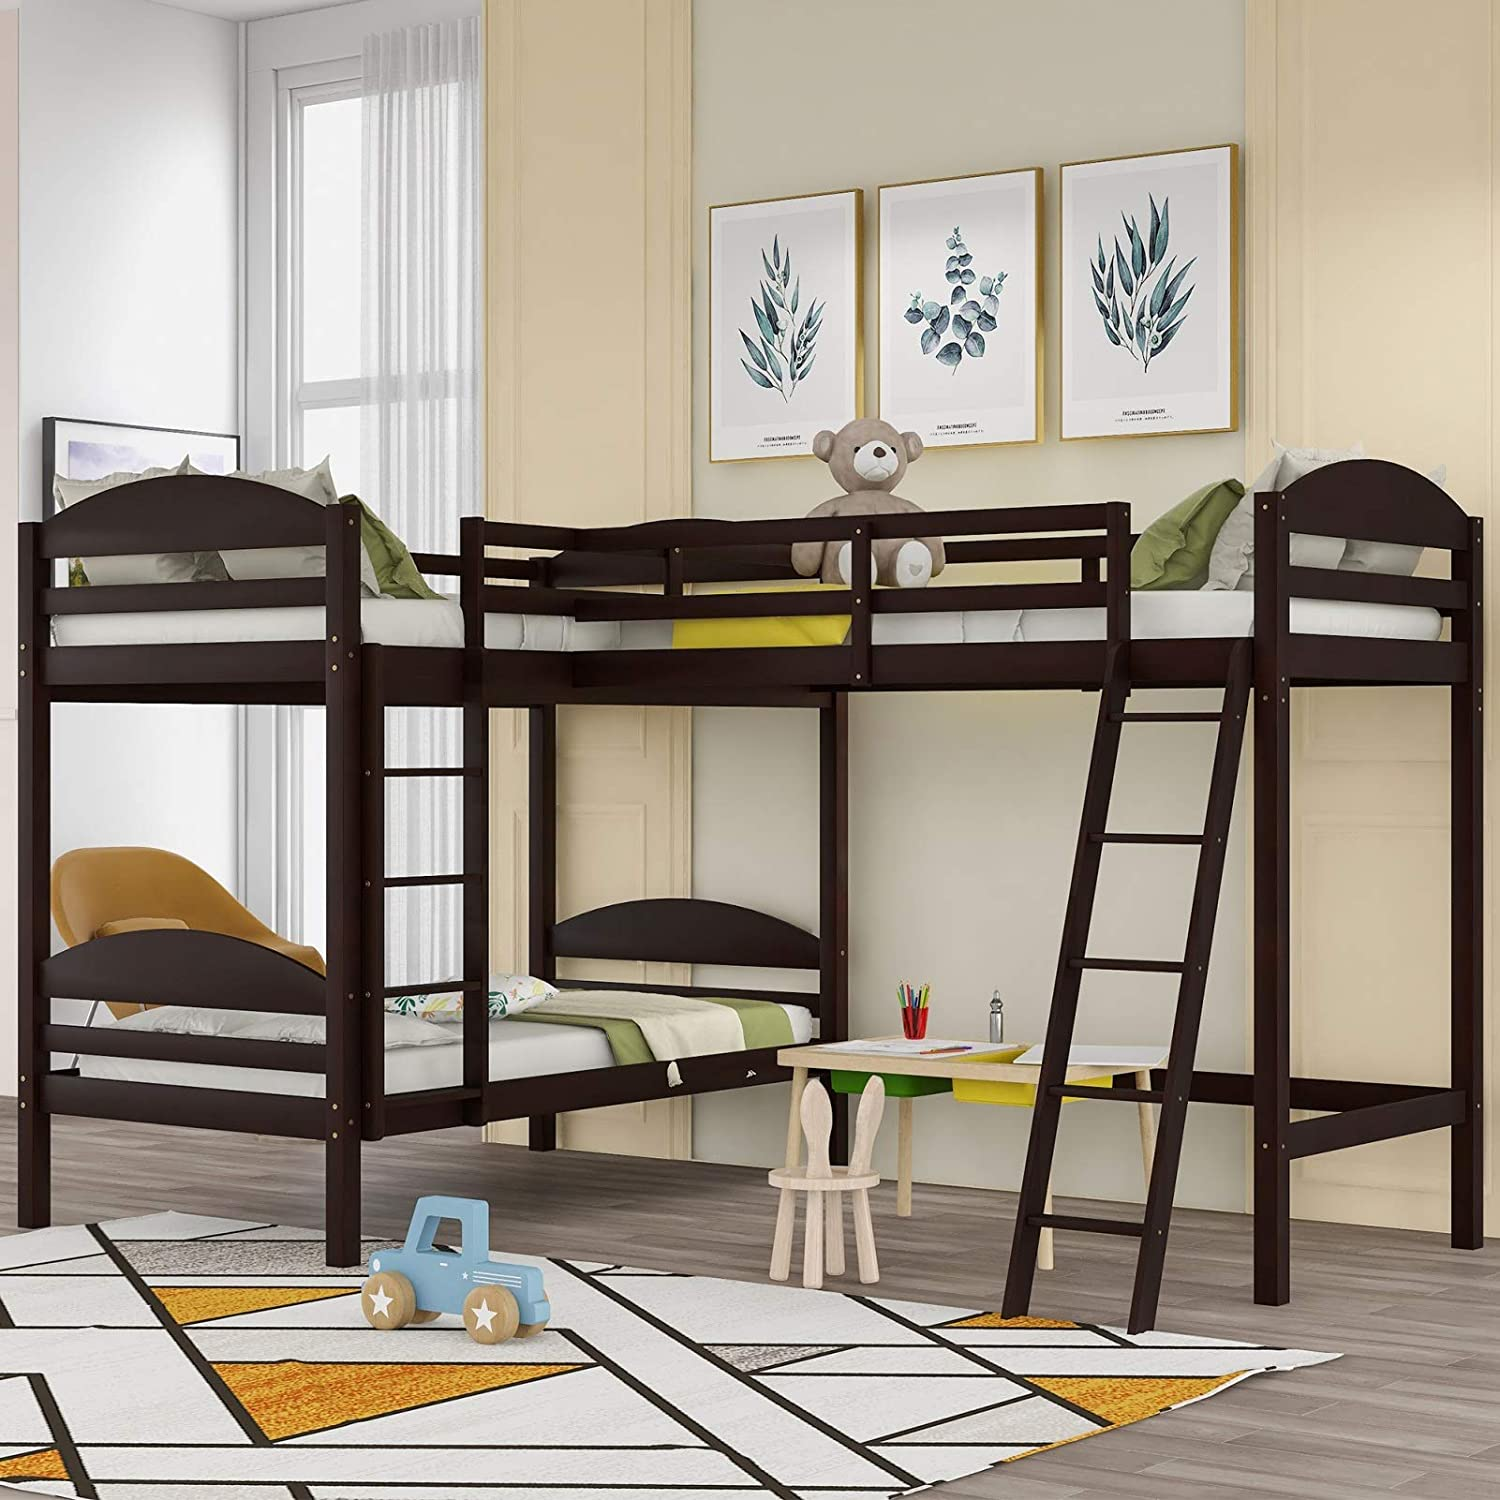 New product JIMAOD L-Shaped Bunk Bed and 3-Be for Limited time cheap sale Suitable Loft Children